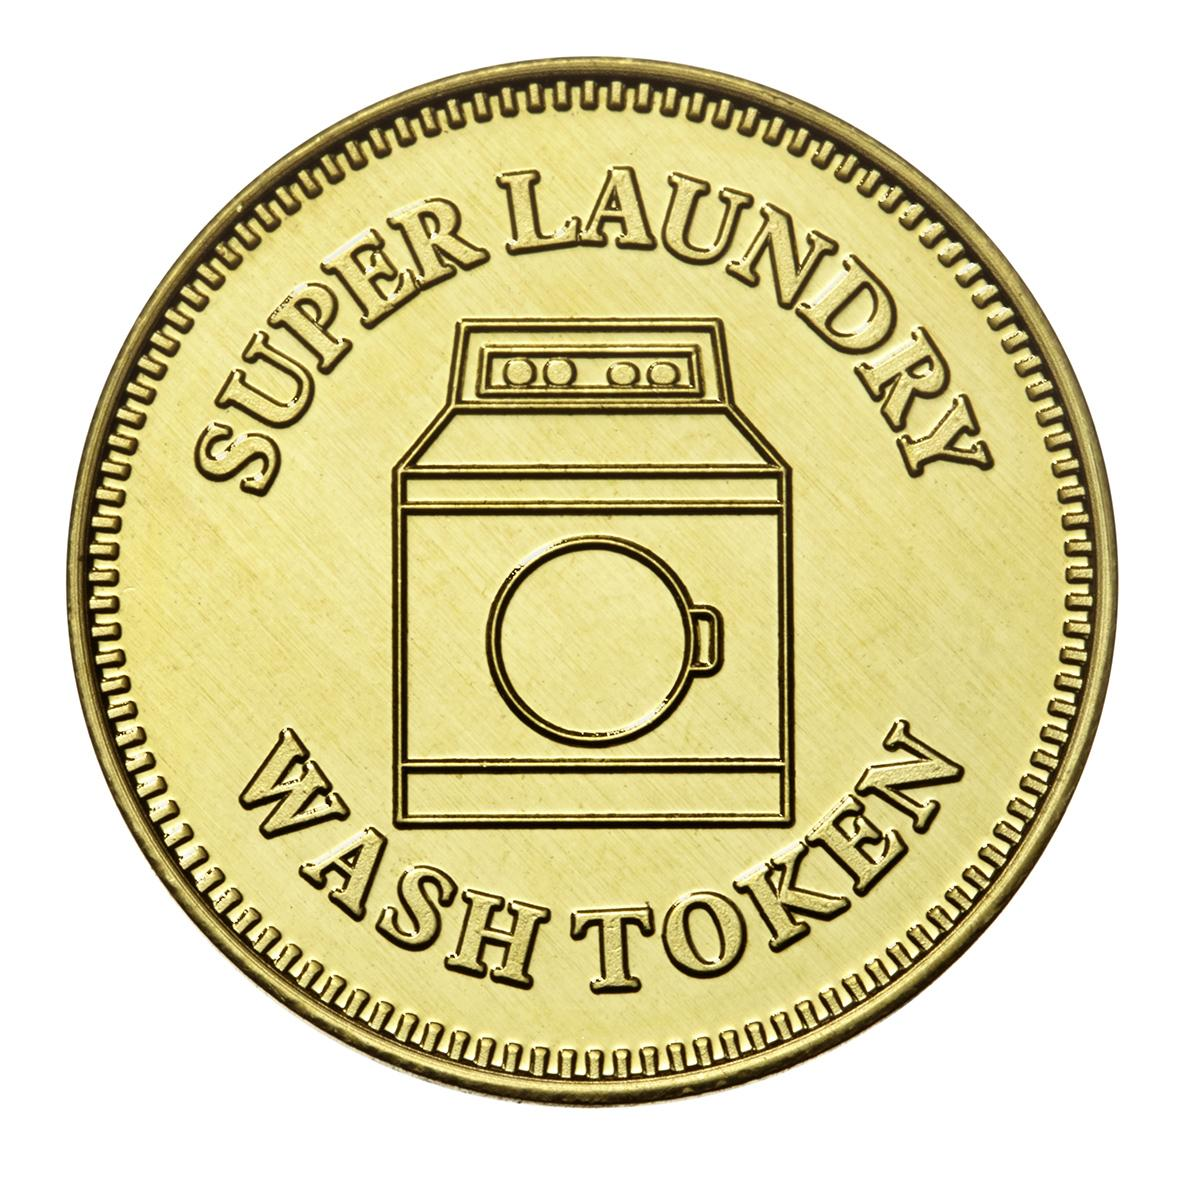 Custom brass laundry token